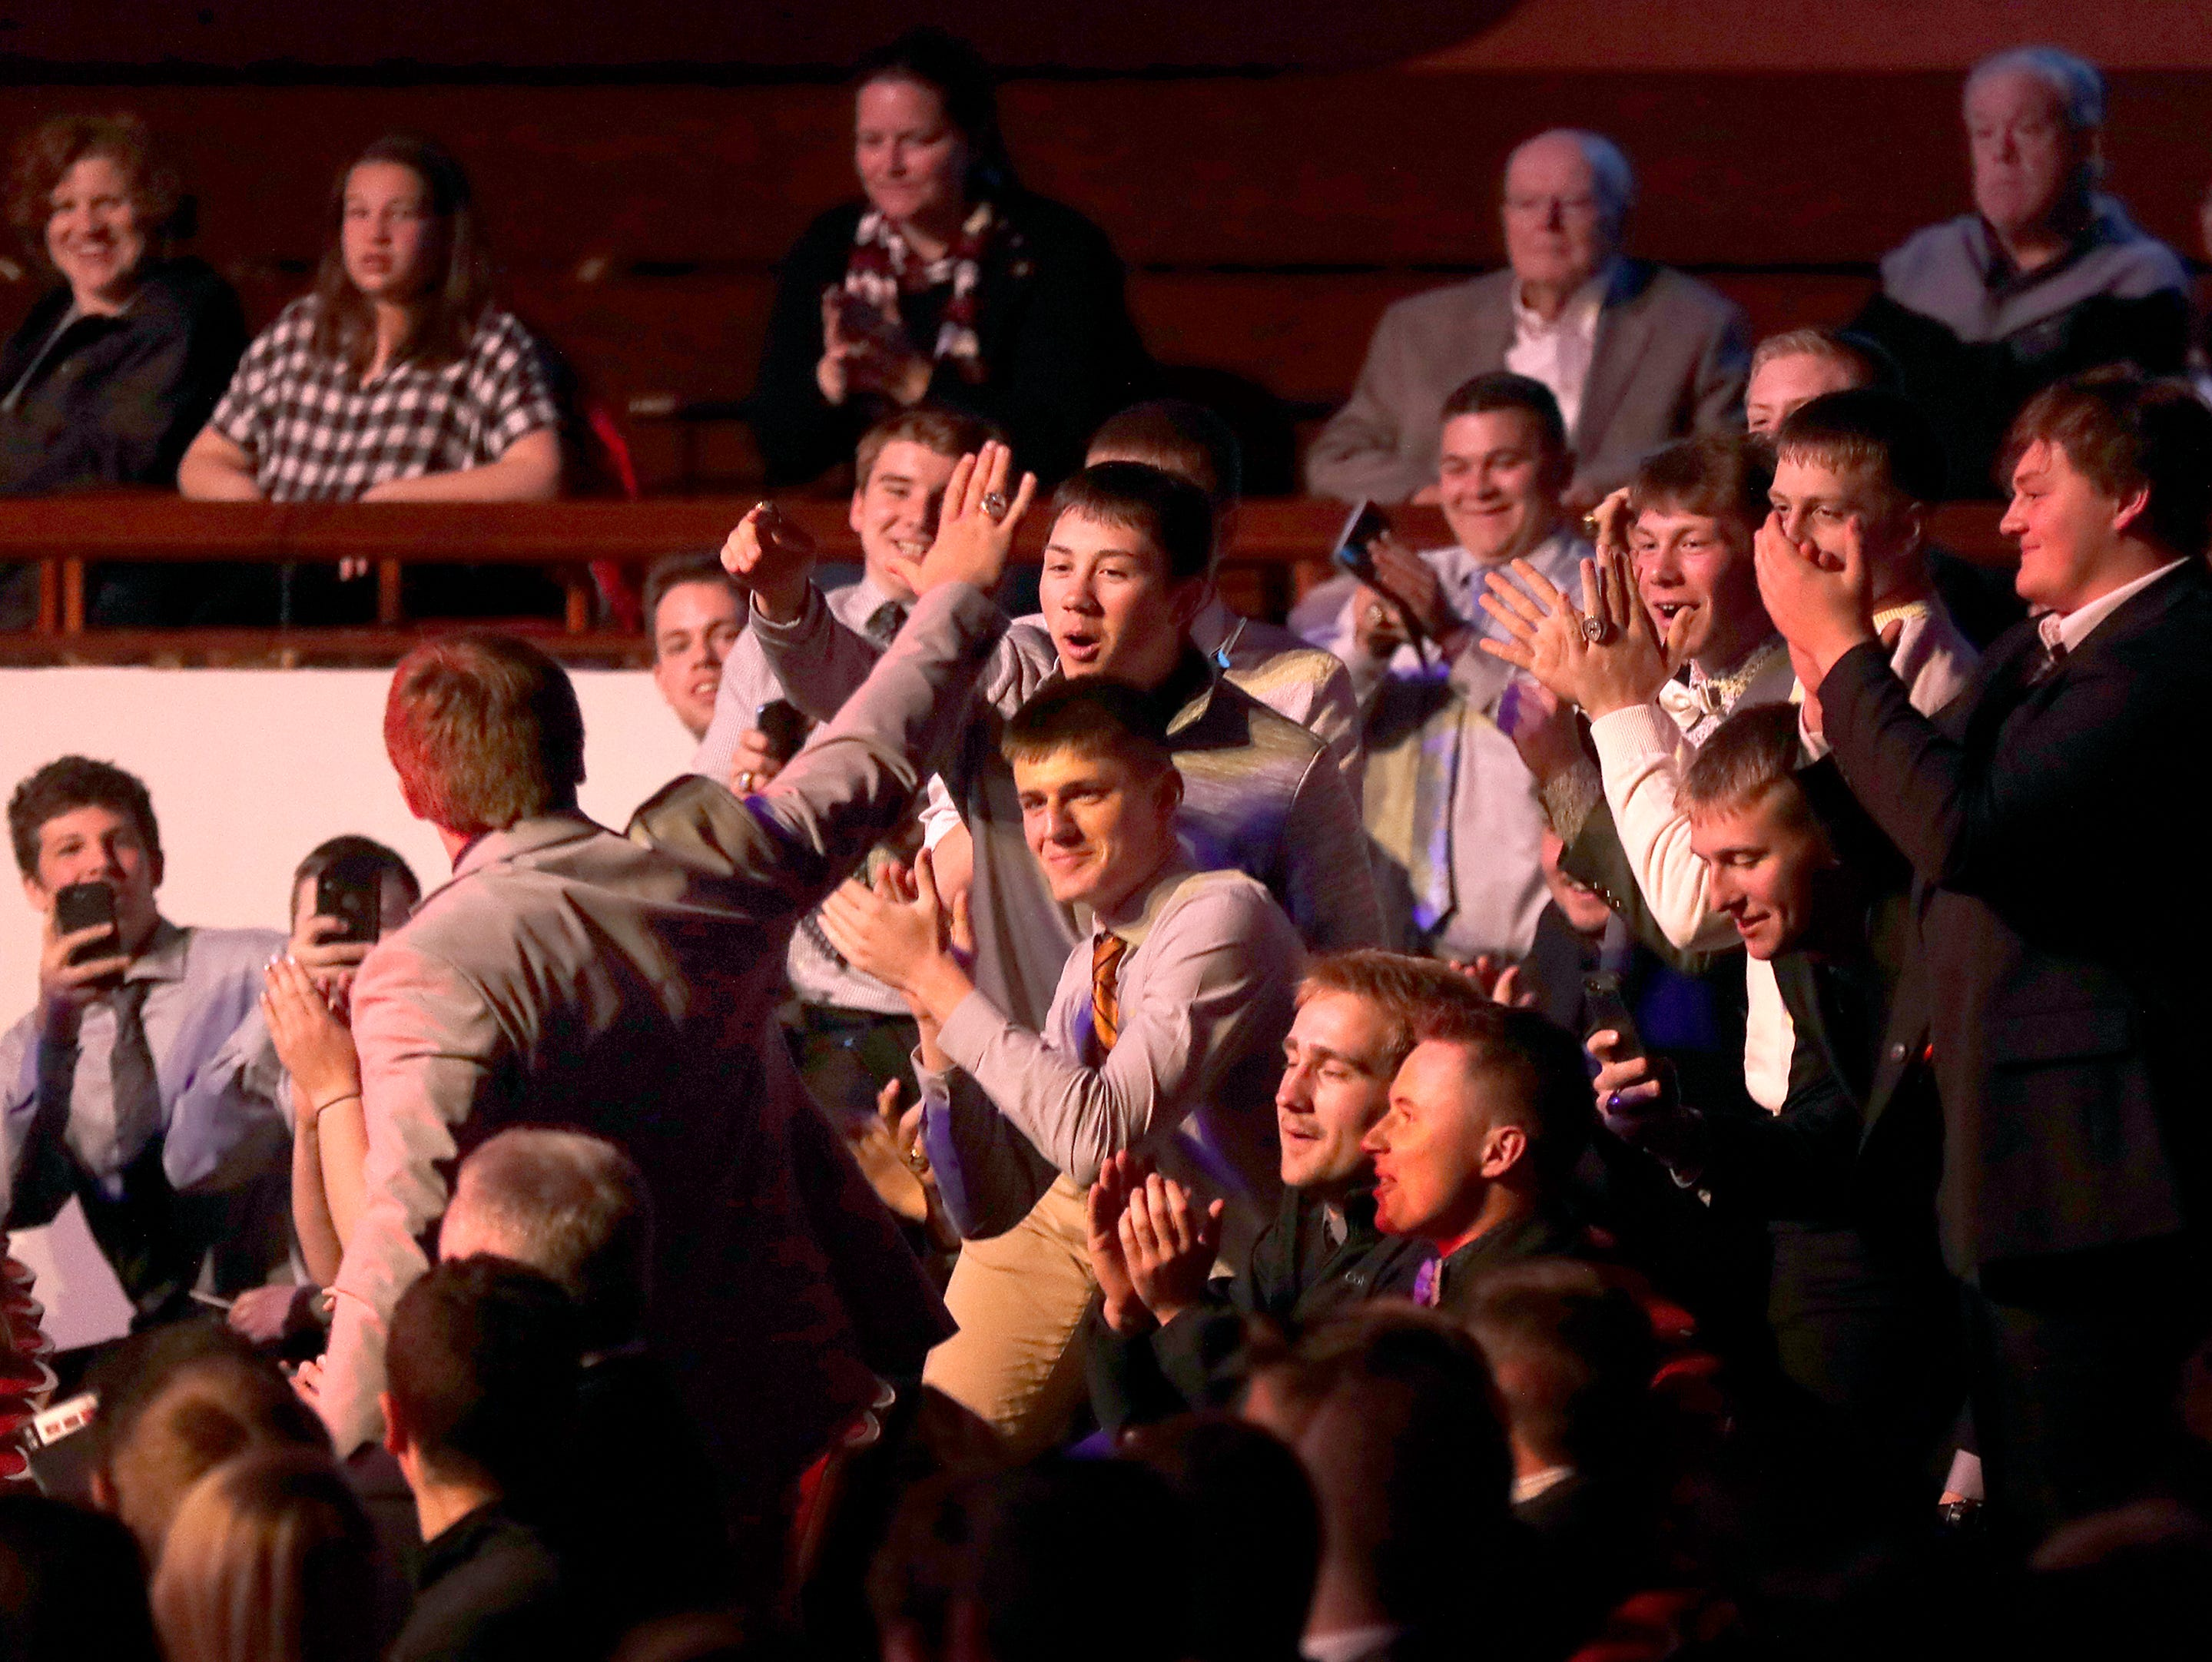 Football Player of the Year, Iola-Scandinavia's Bryce Huettner his team mates react to the award announcement during the Wisconsin High School Sports Awards show at the Fox Cities Performing Arts Center on Wednesday, May 8, 2019, in Appleton, Wis. Olympic champion Michael Phelps was the guest speaker. The annaul event was presented by USA TODAY NETWORK-Wisconsin. 